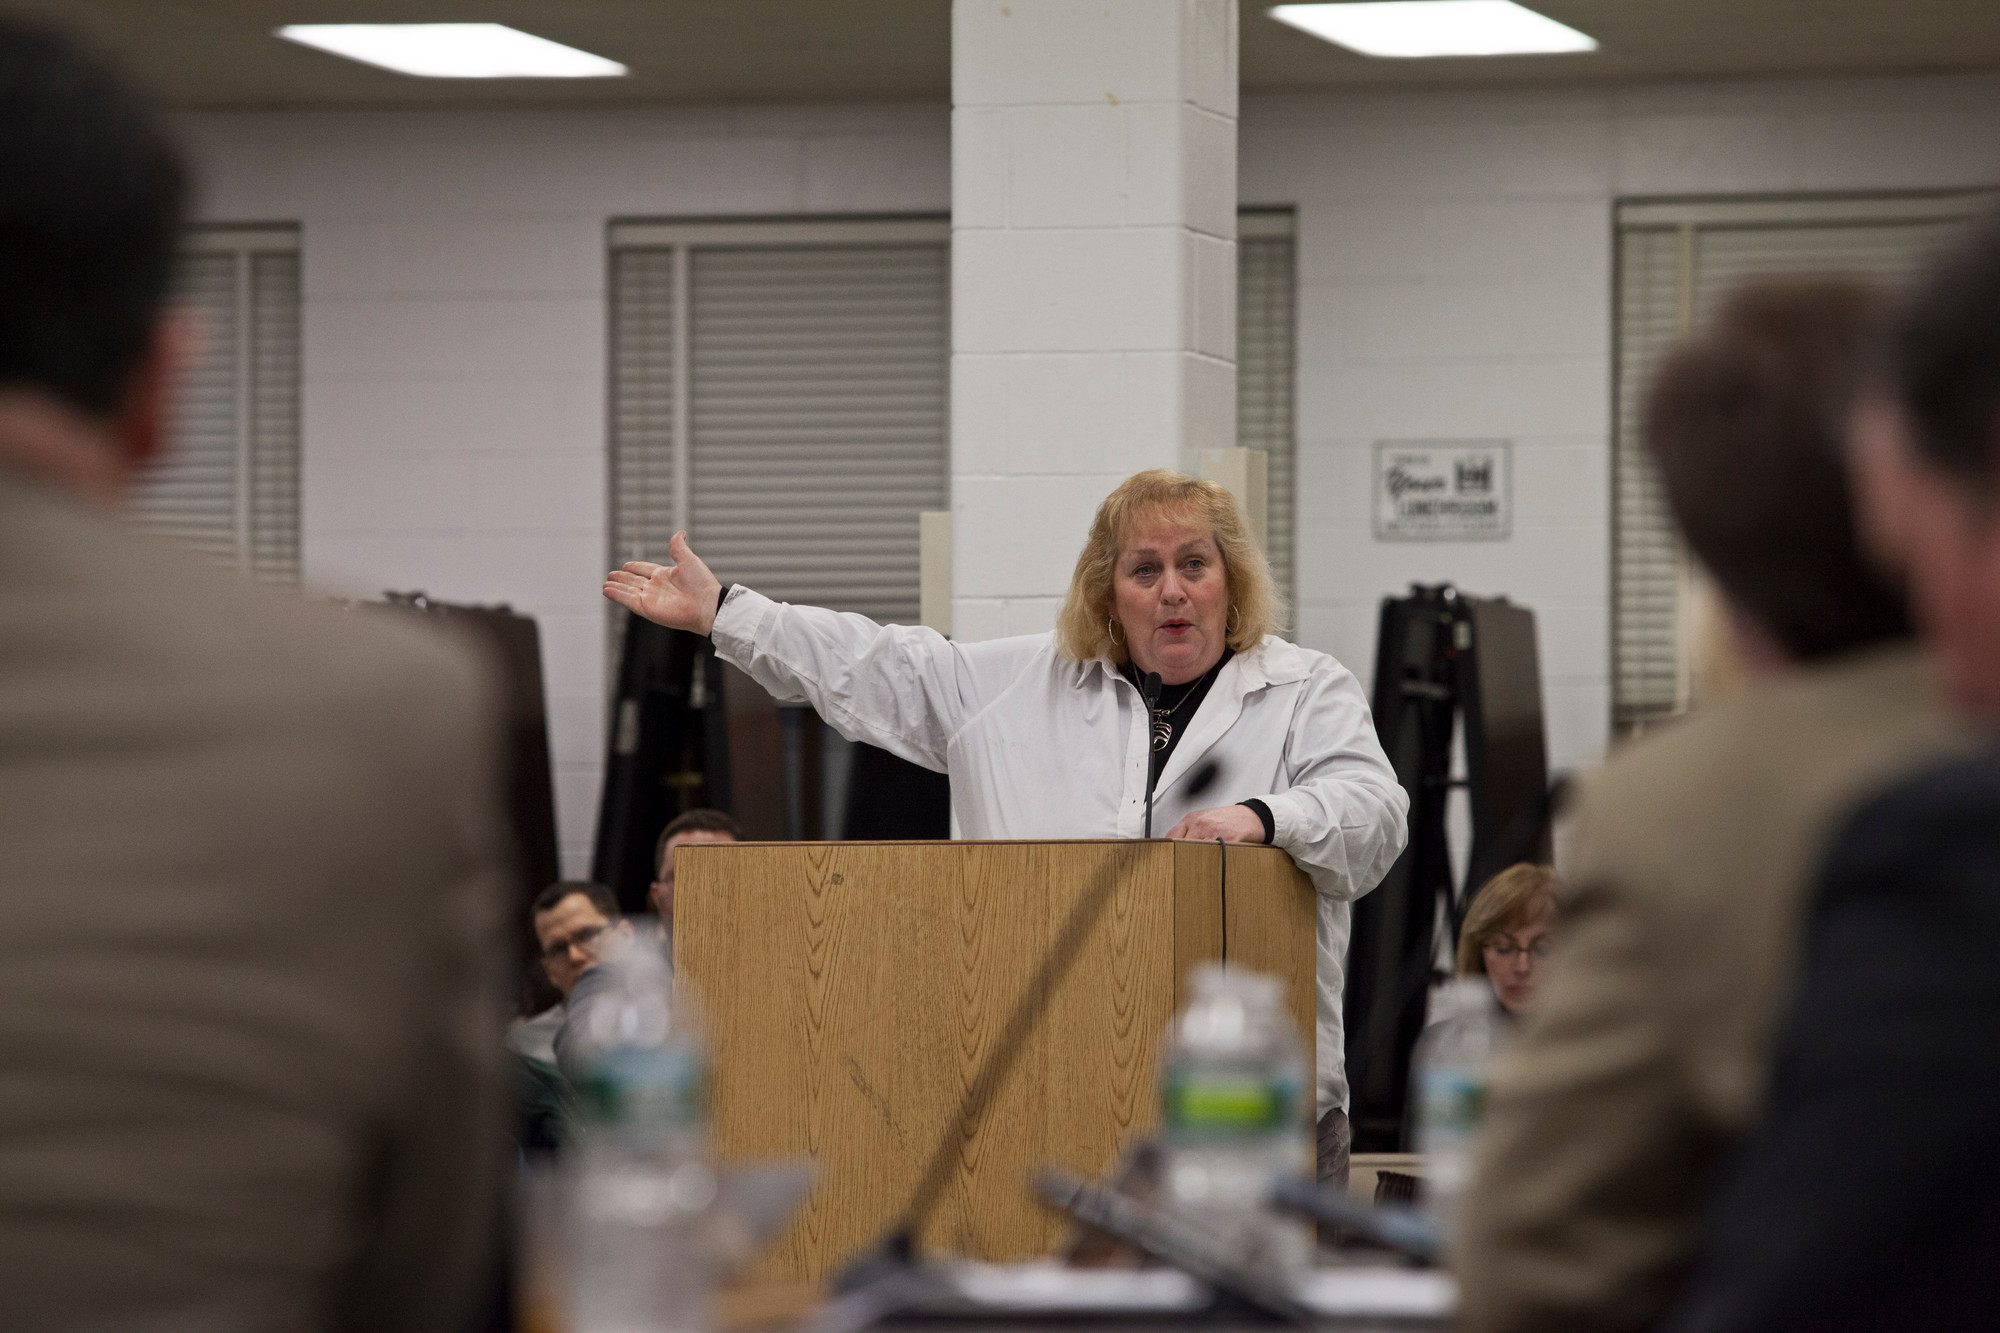 Sharon Daly implored school board members to reconsider transportation changes.